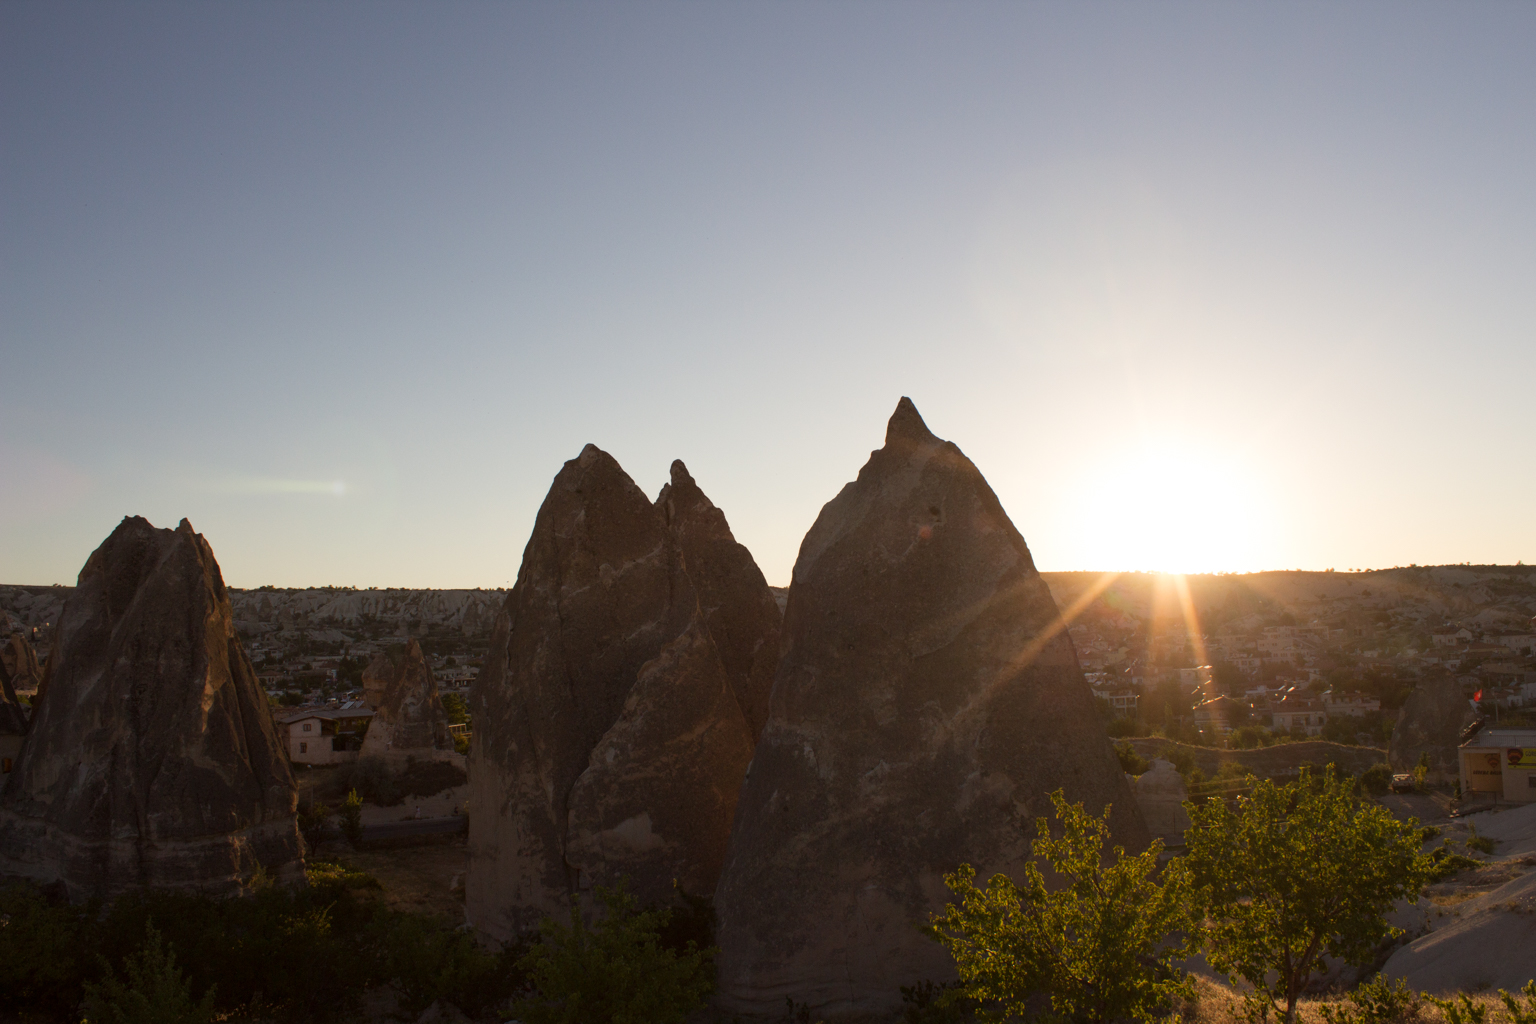 Cappadocia,an area in Central Turkey is known for it's weird shaped rocks and 'fairy chimneys'.